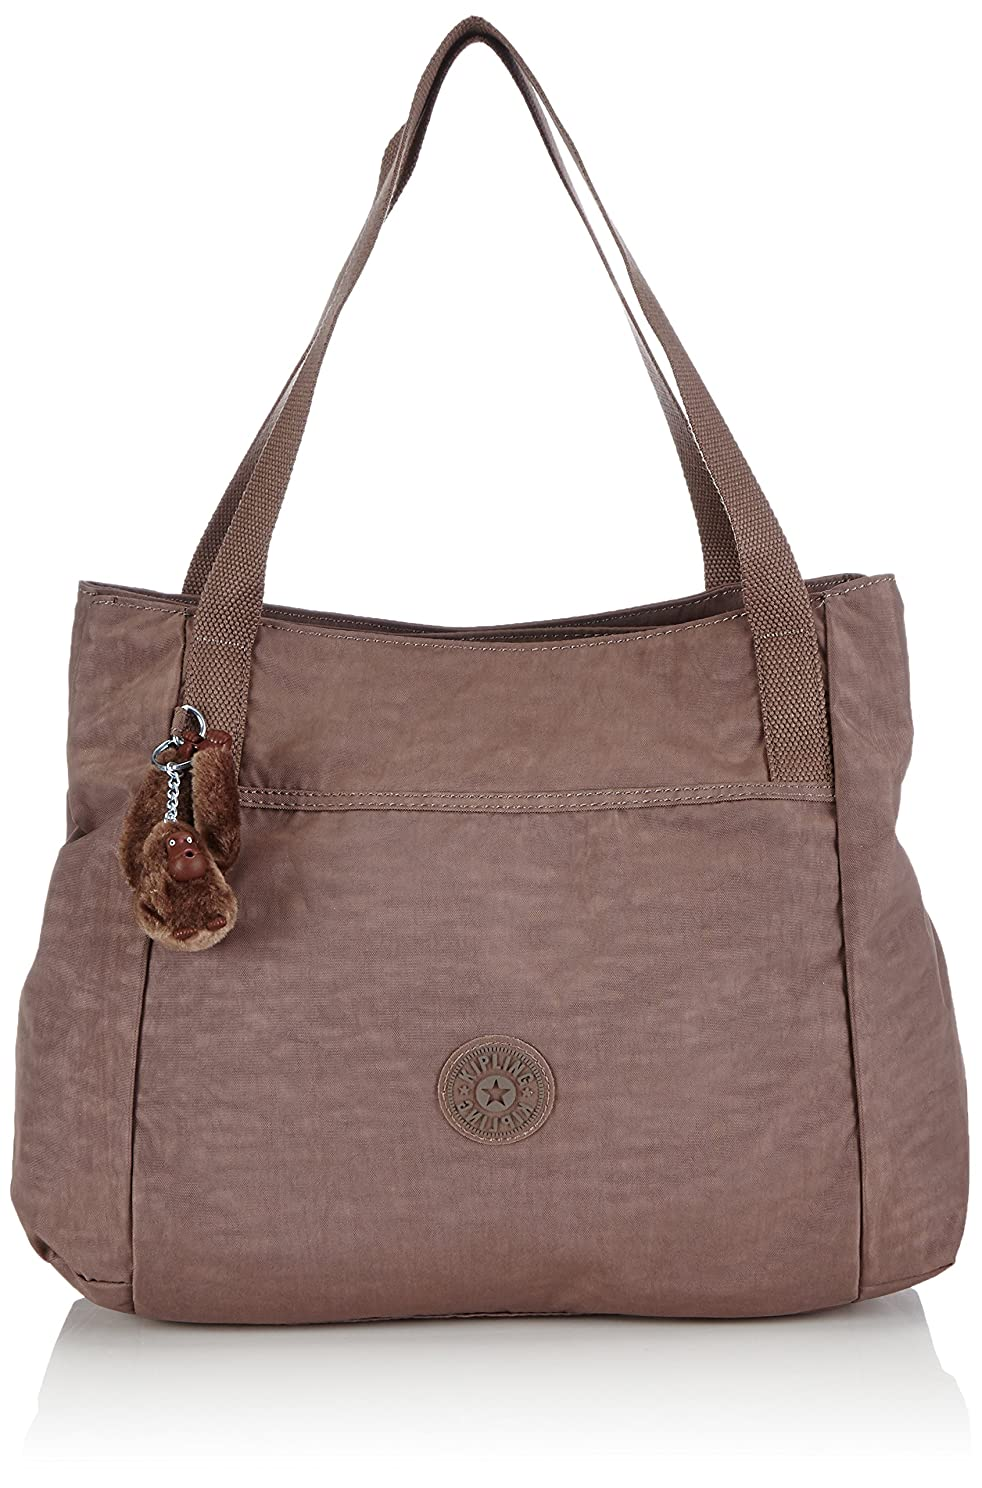 マットダニうれしい(One Size Fits All, Monkey Brown) - KIPLING Womens Pravia Shoulder Bag